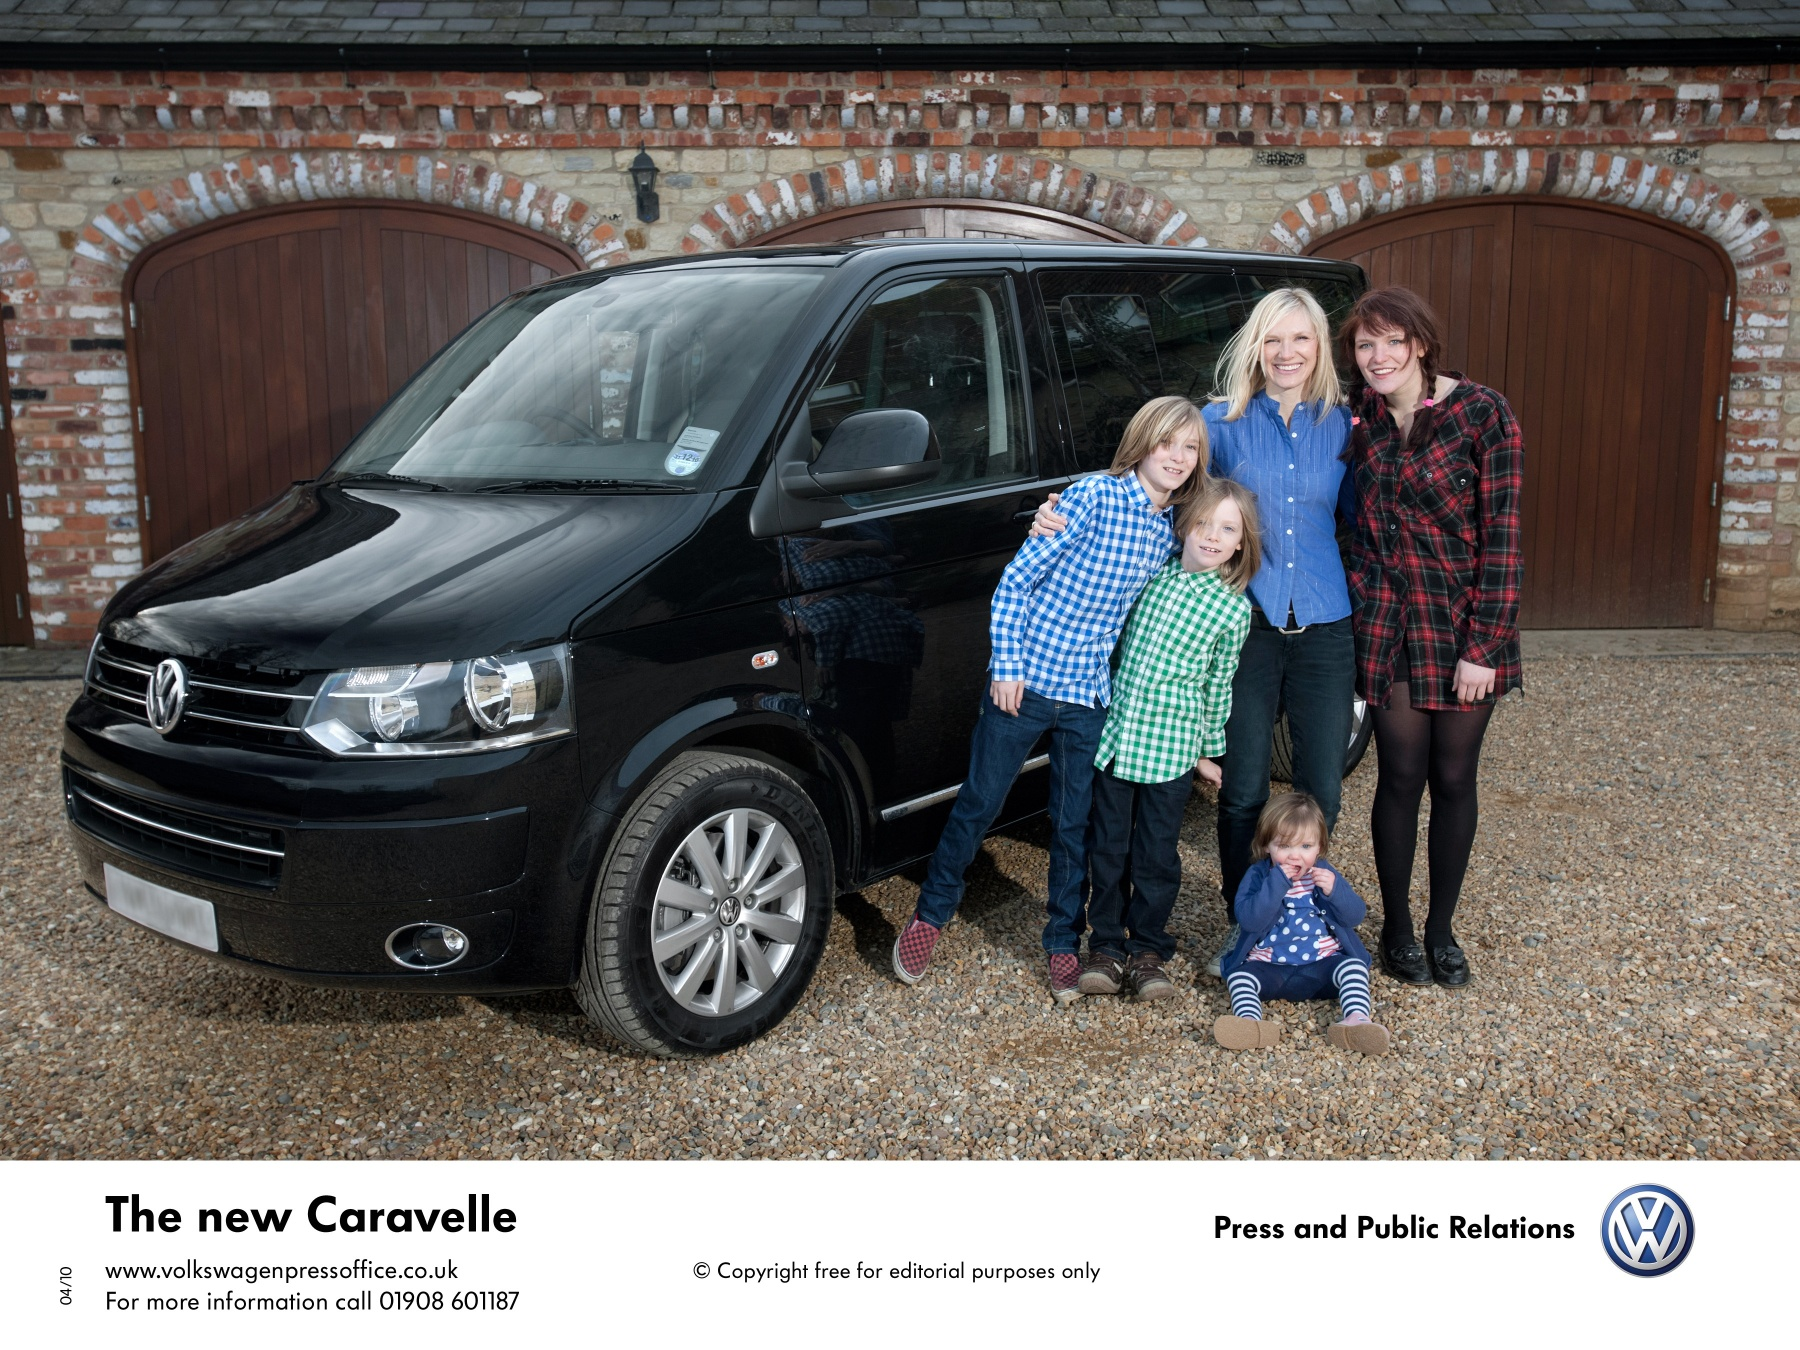 Jo Whiley and her new Volkswagen Caravelle | RealWire RealResource